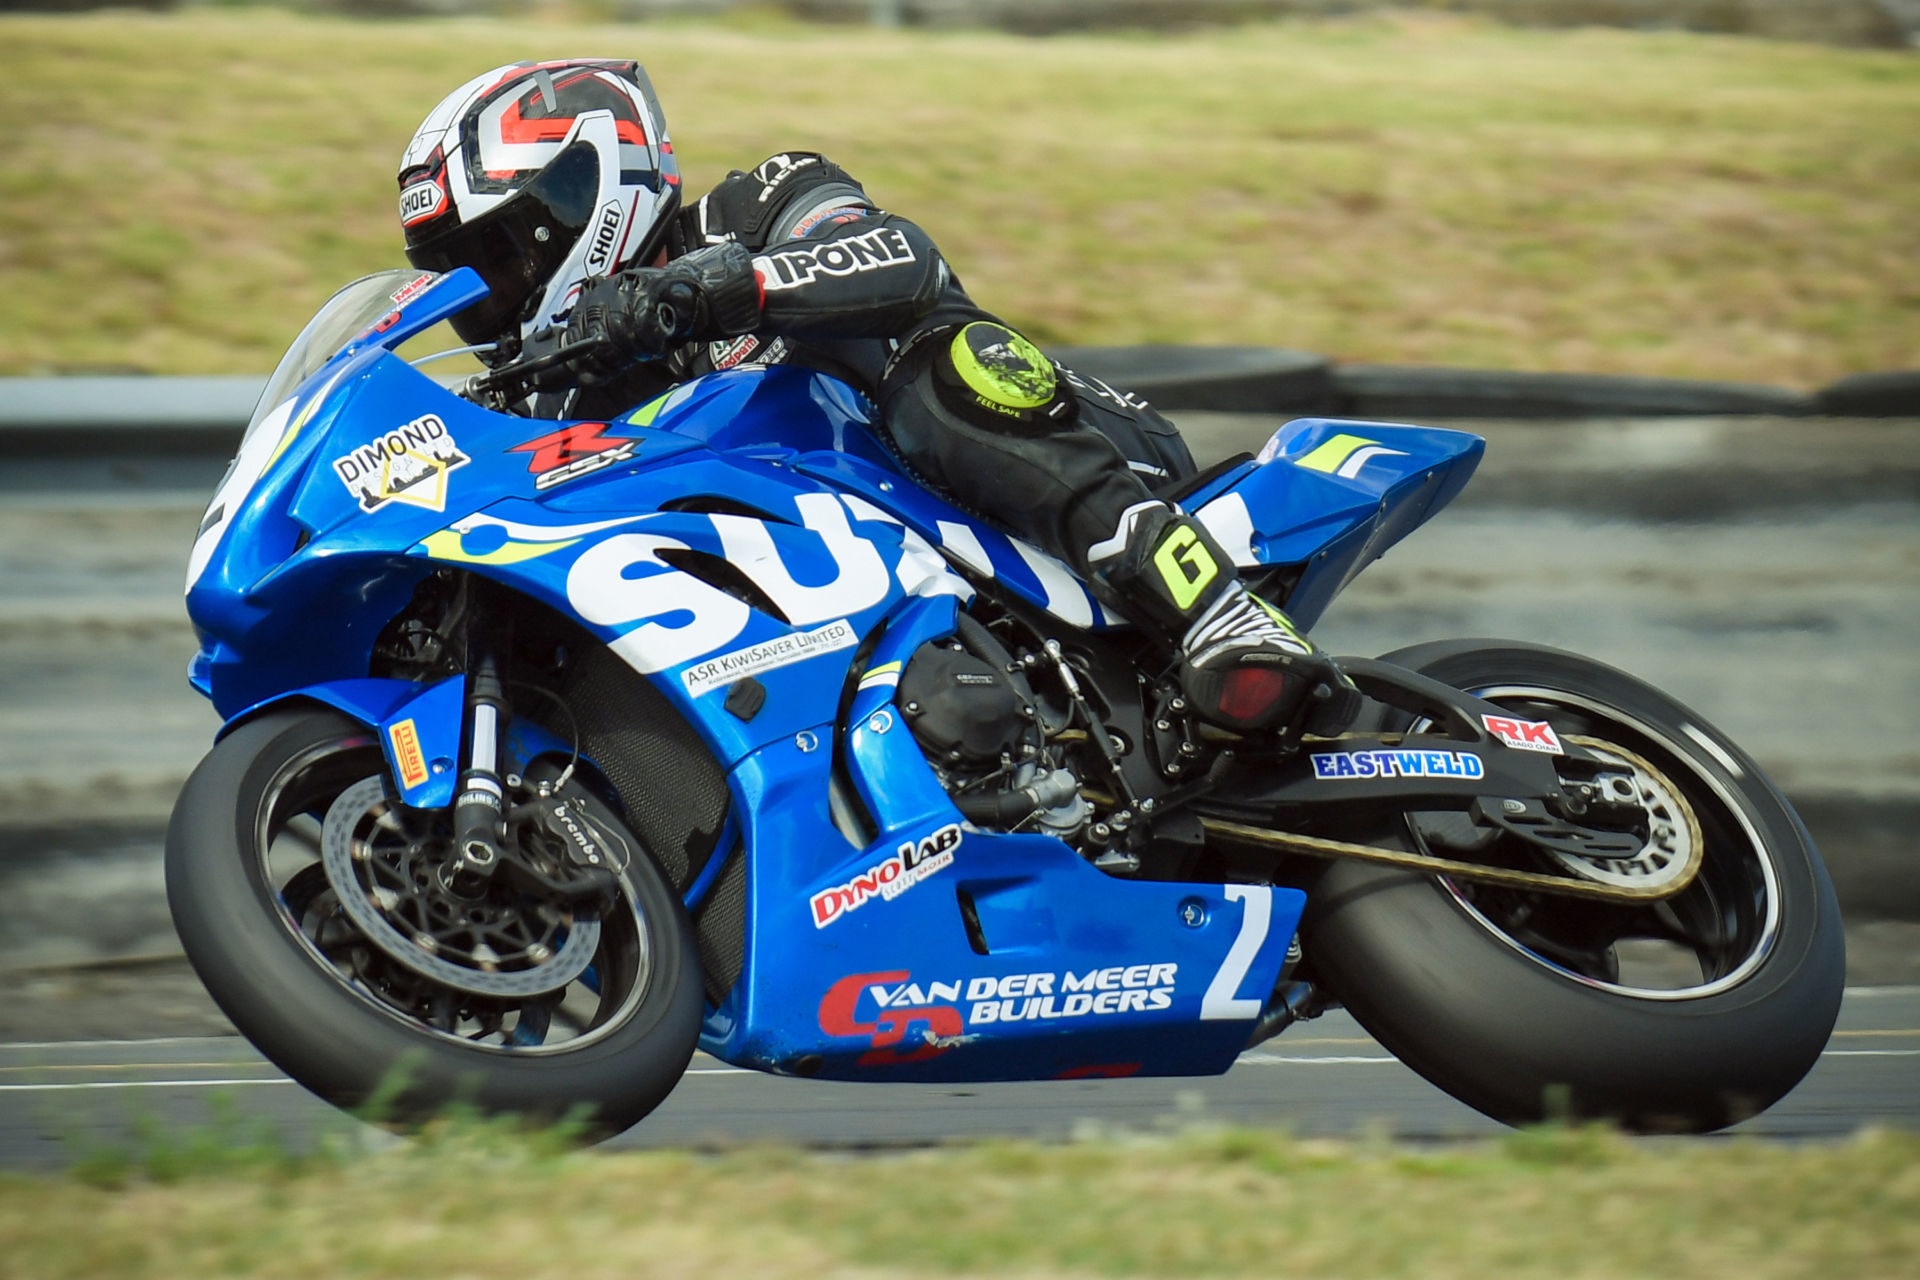 New Zealand Superbike Championship racer Scott Moir. Photo by Andy McGechan, courtesy of Team Suzuki Press Office.